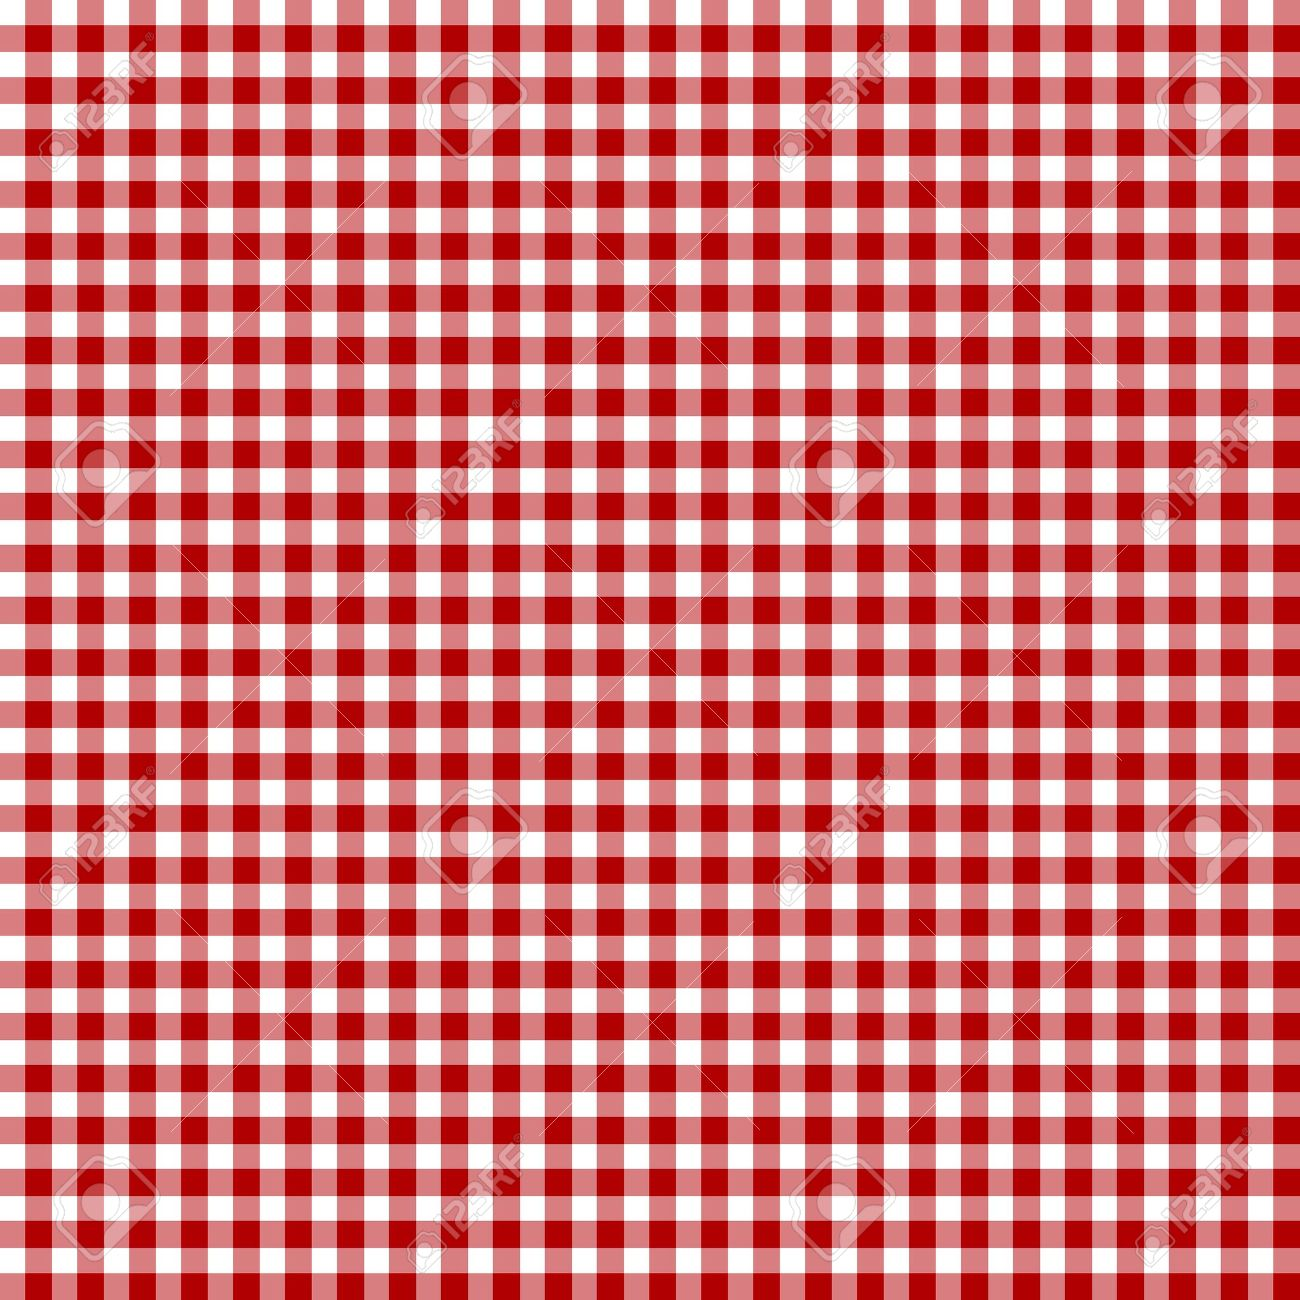 Attractive Red Picnic Fabric With Straight Lines Stock Photo   3207212